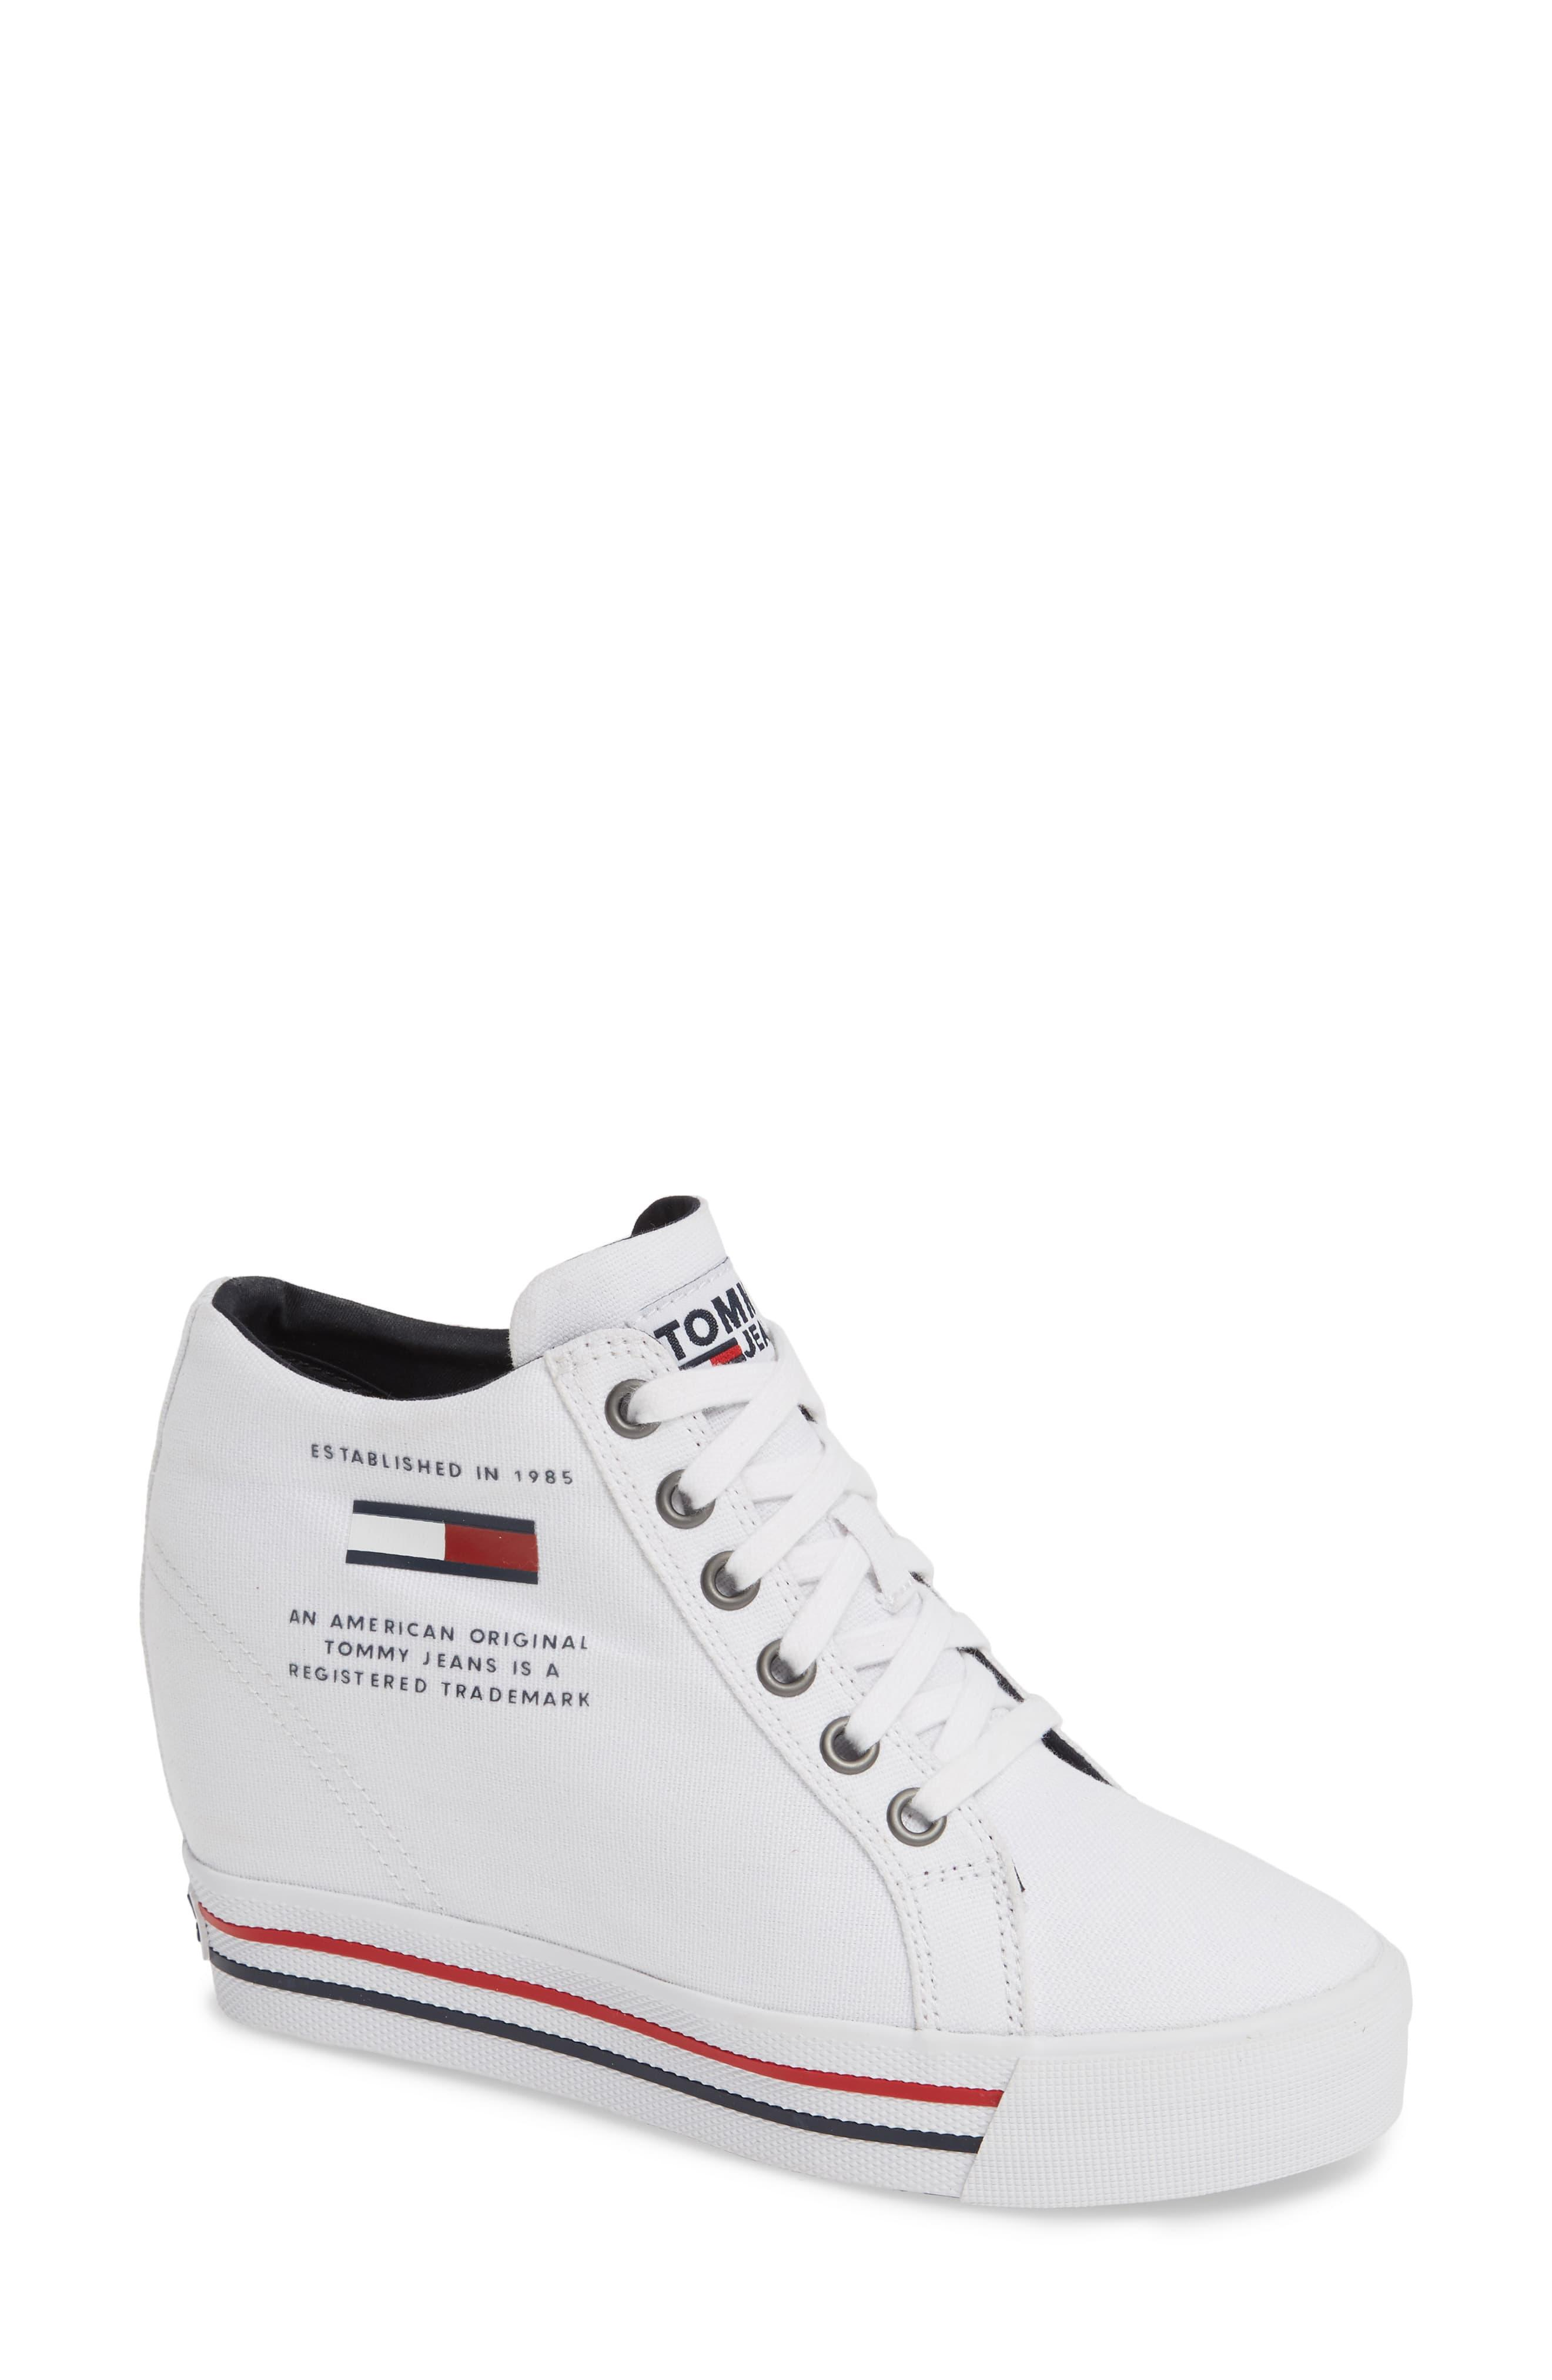 Tommy Hilfiger Wedge Sneaker in White